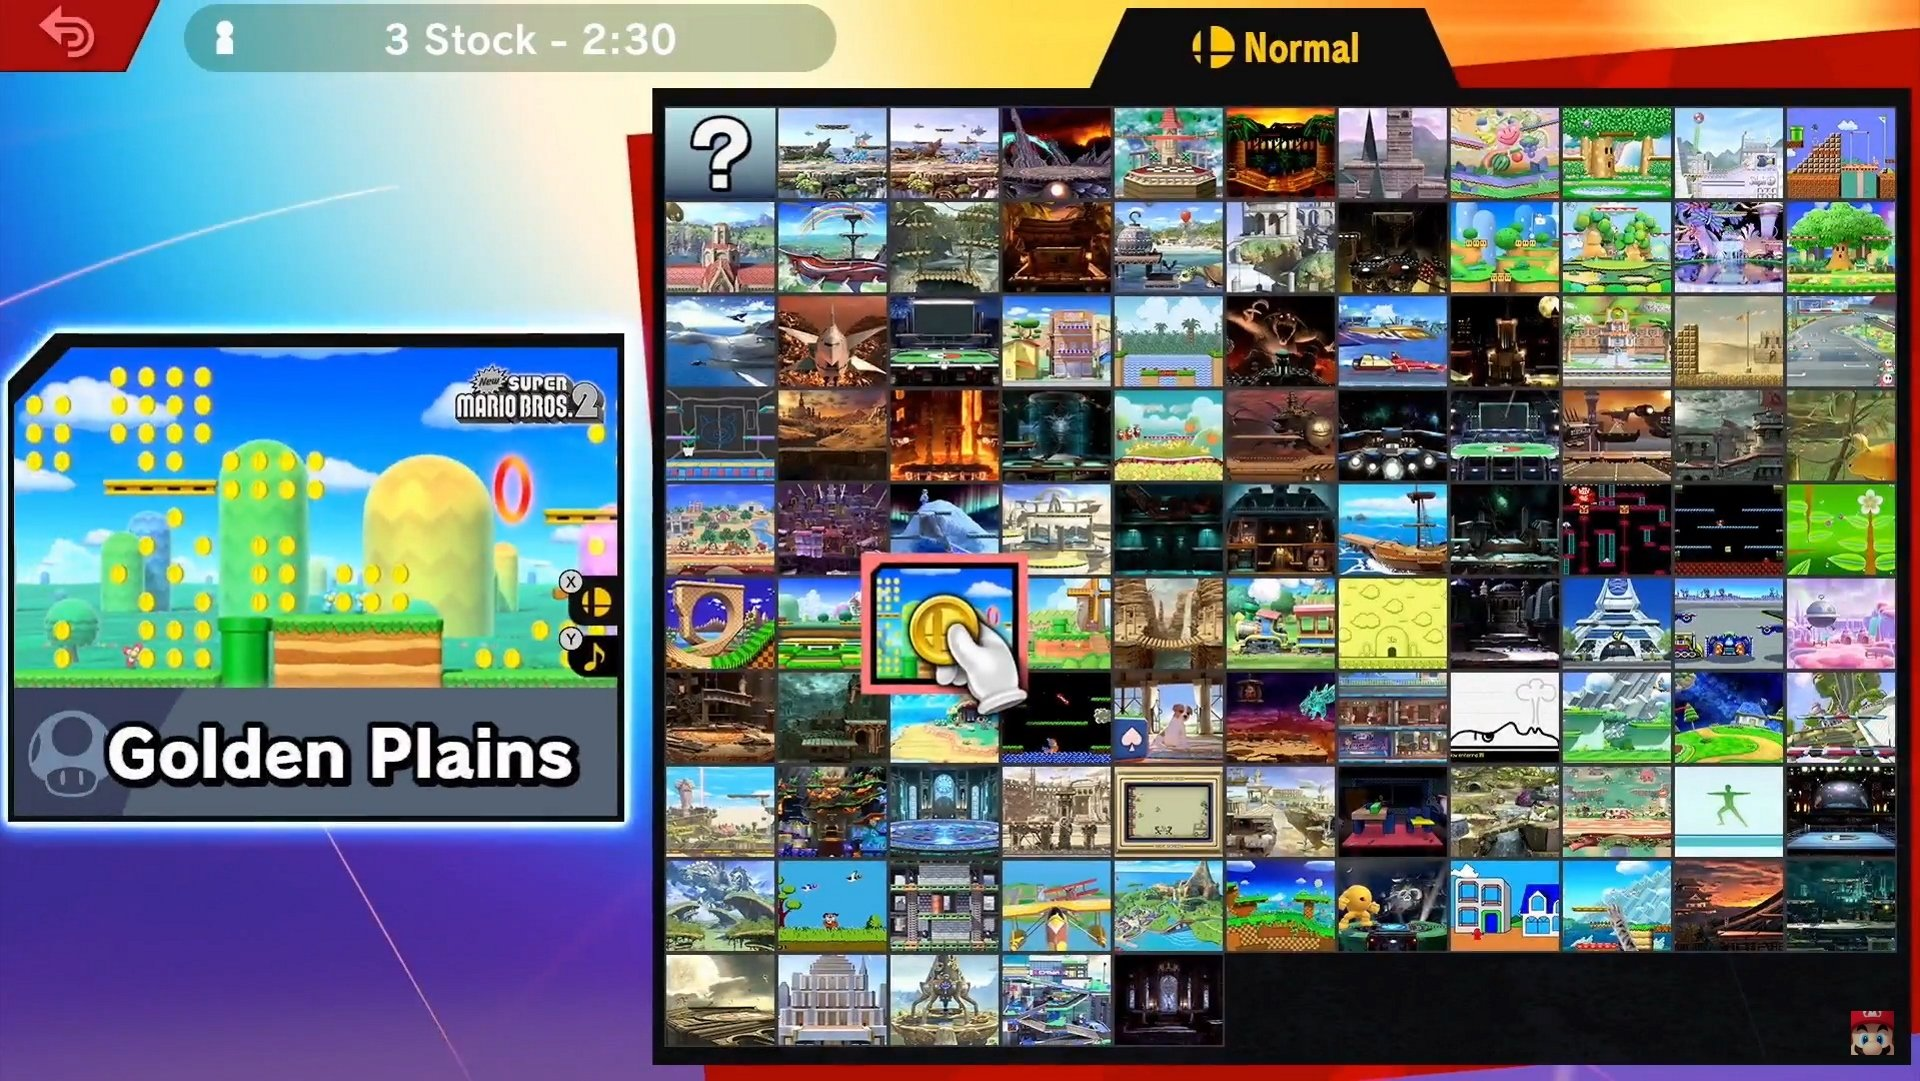 Many new stages Super Smash Bros. Ultimate announced